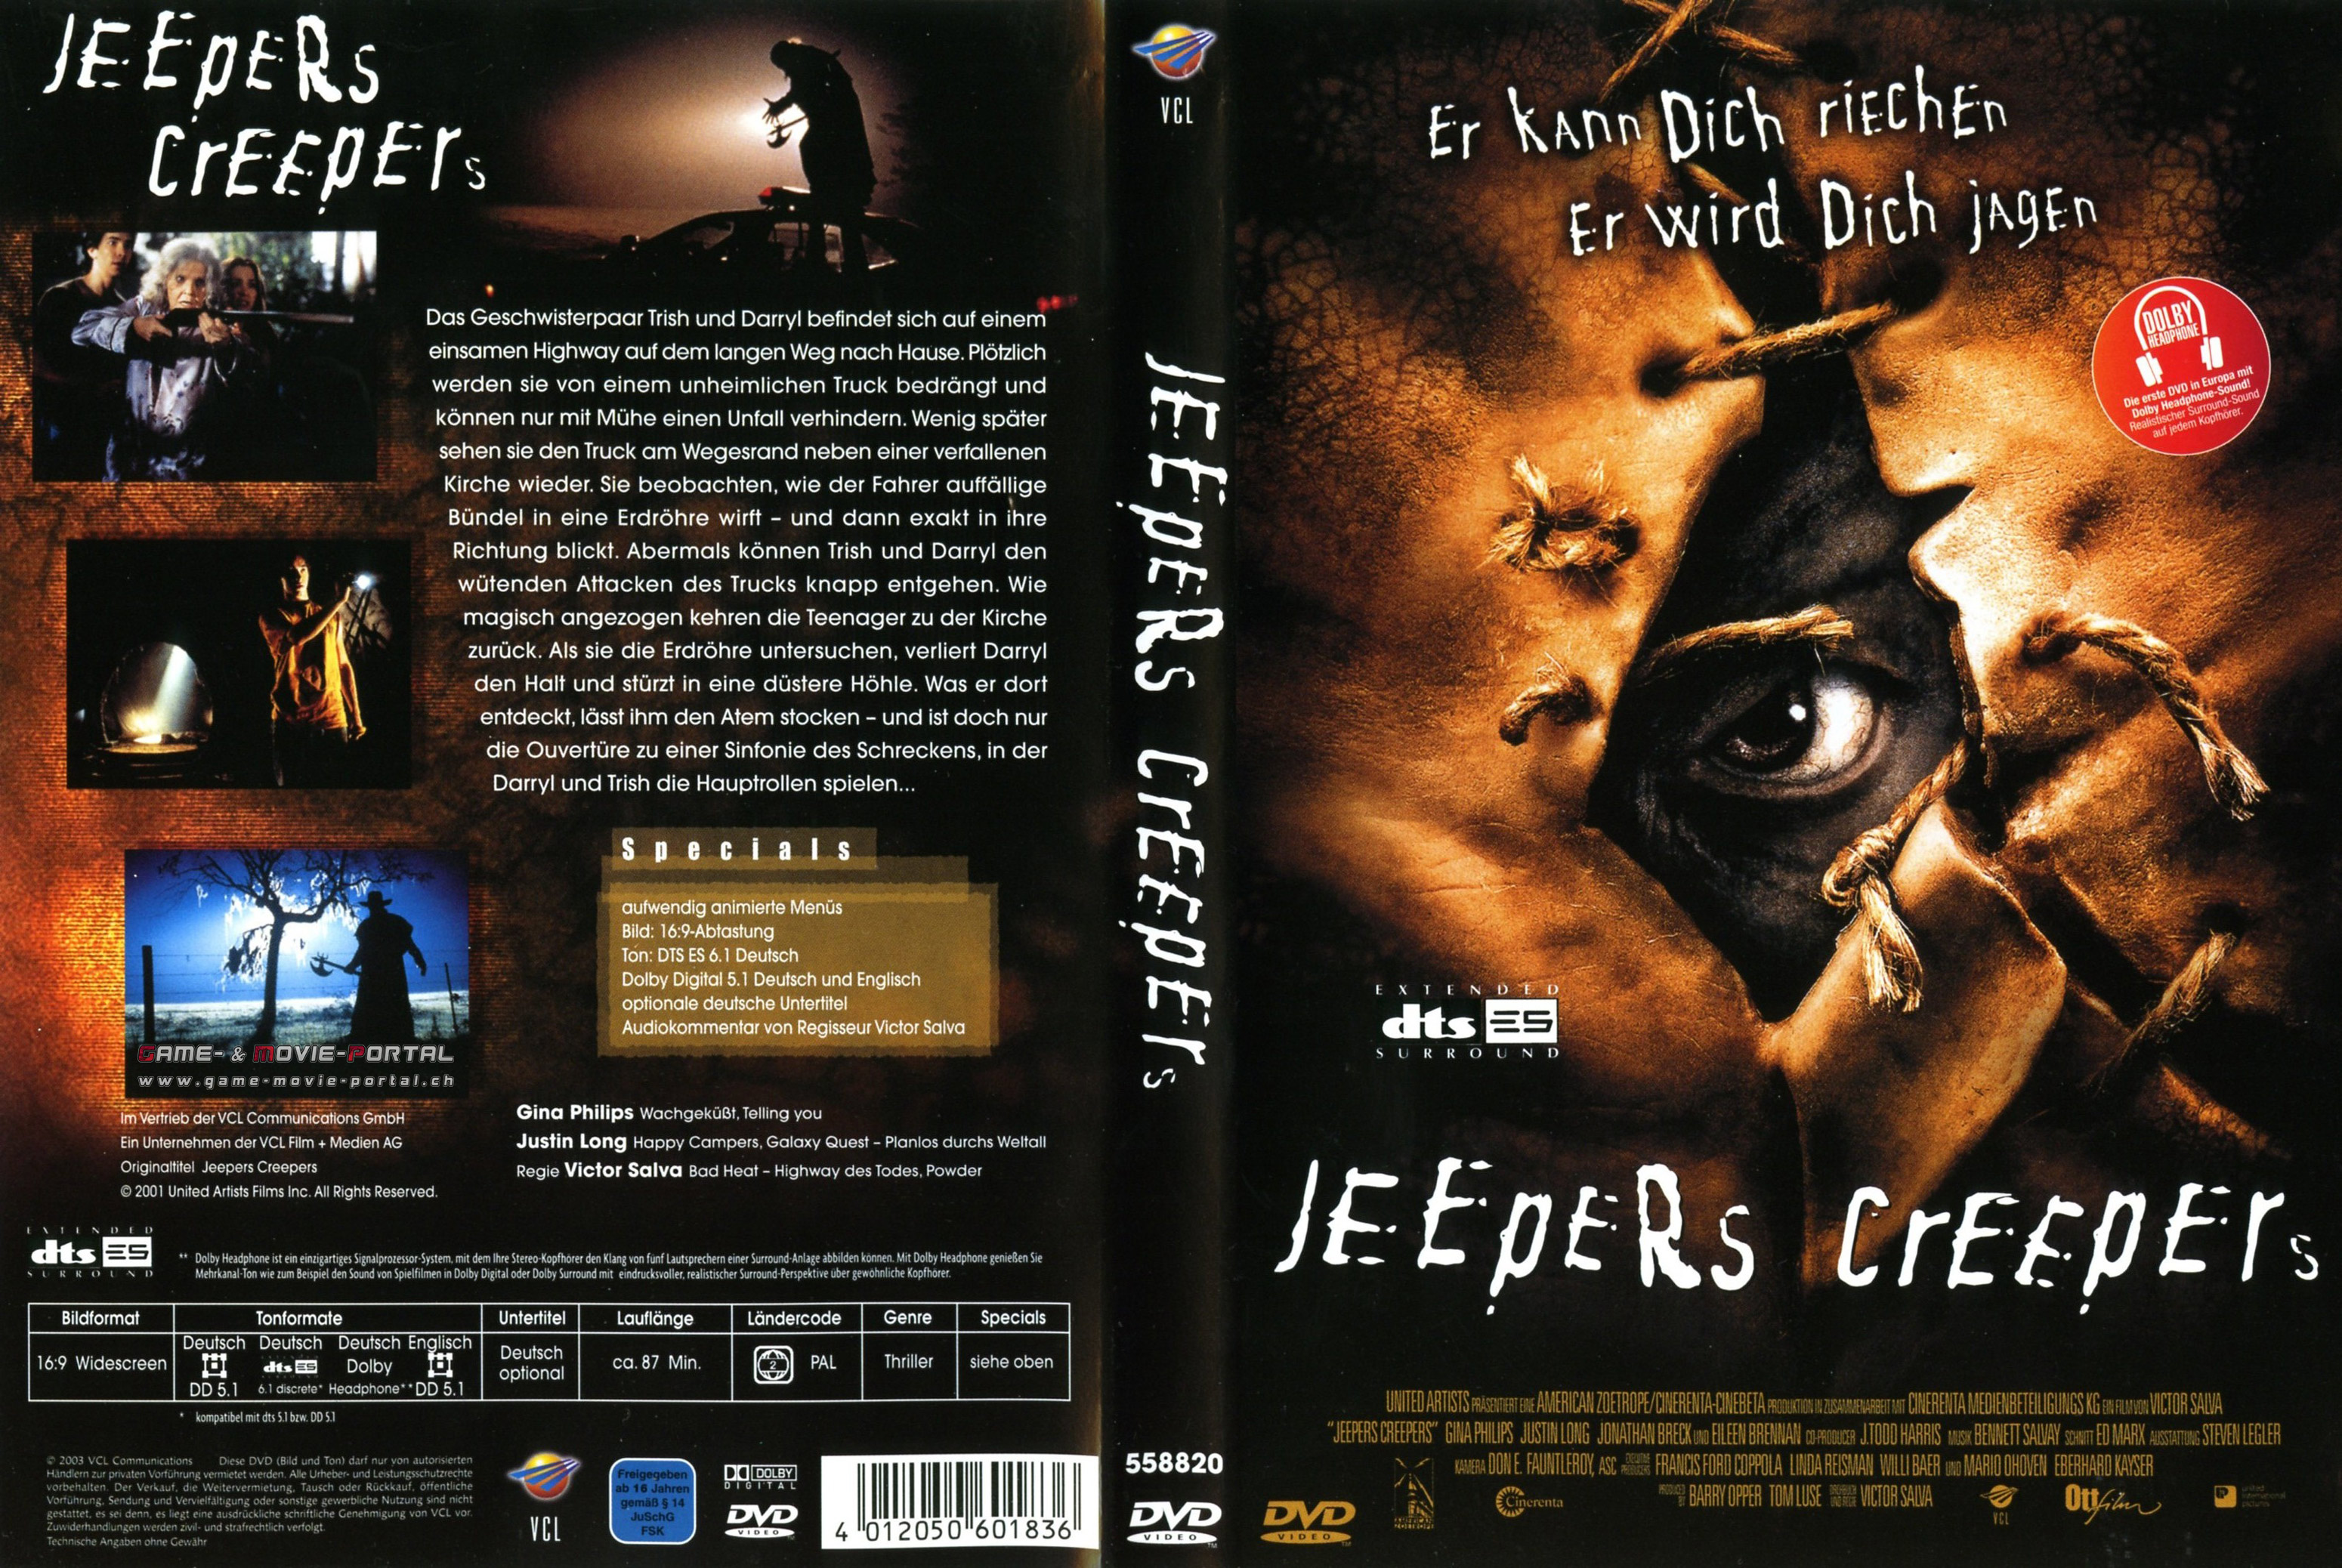 jeepers creepers deutsch